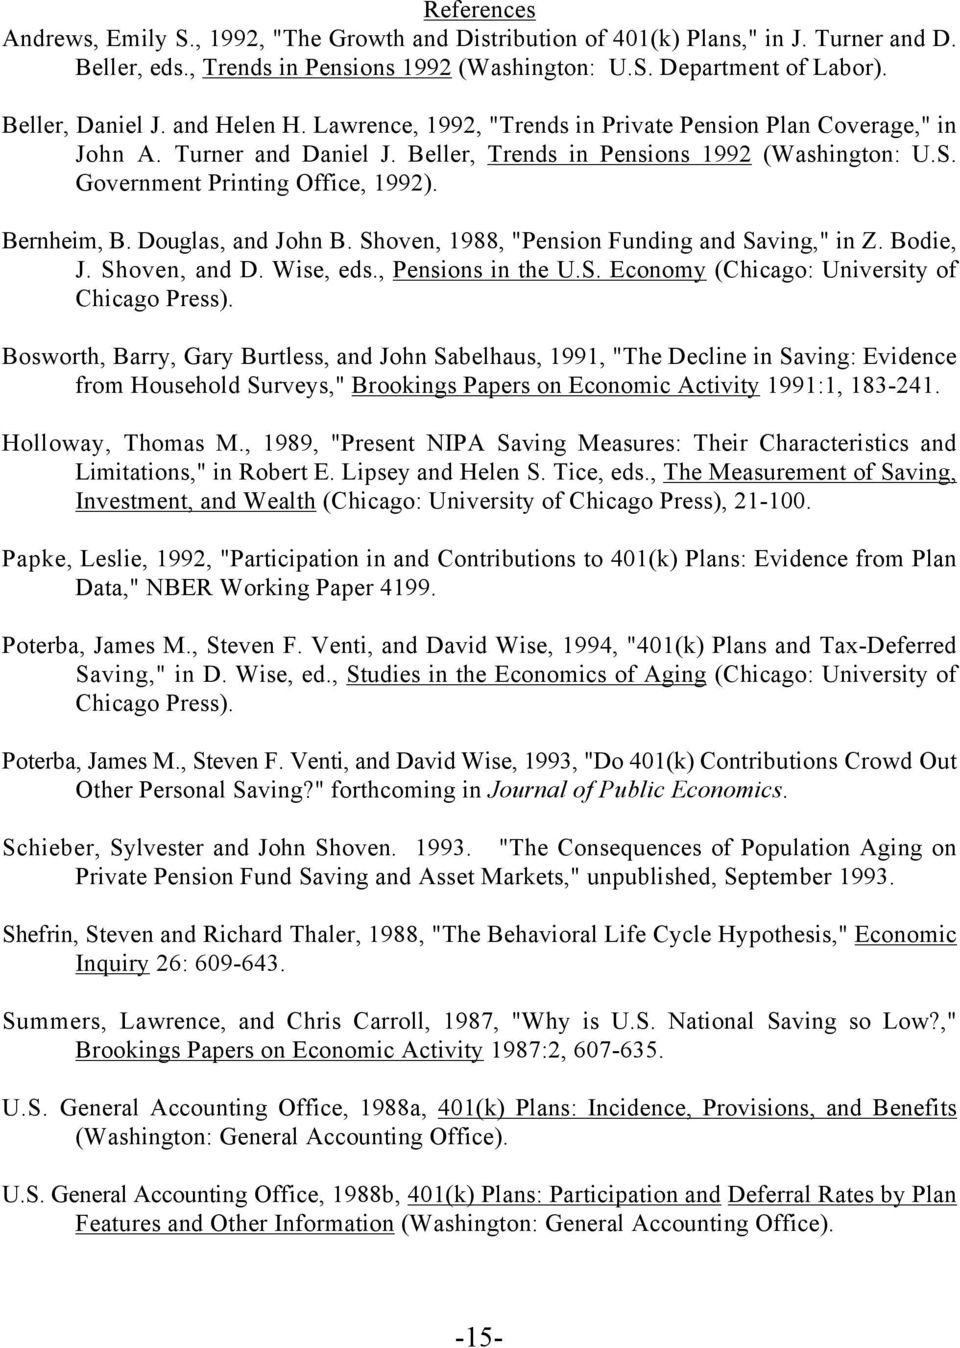 "Bernheim, B. Douglas, and John B. Shoven, 1988, ""Pension Funding and Saving,"" in Z. Bodie, J. Shoven, and D. Wise, eds., Pensions in the U.S. Economy (Chicago: University of Chicago Press)."